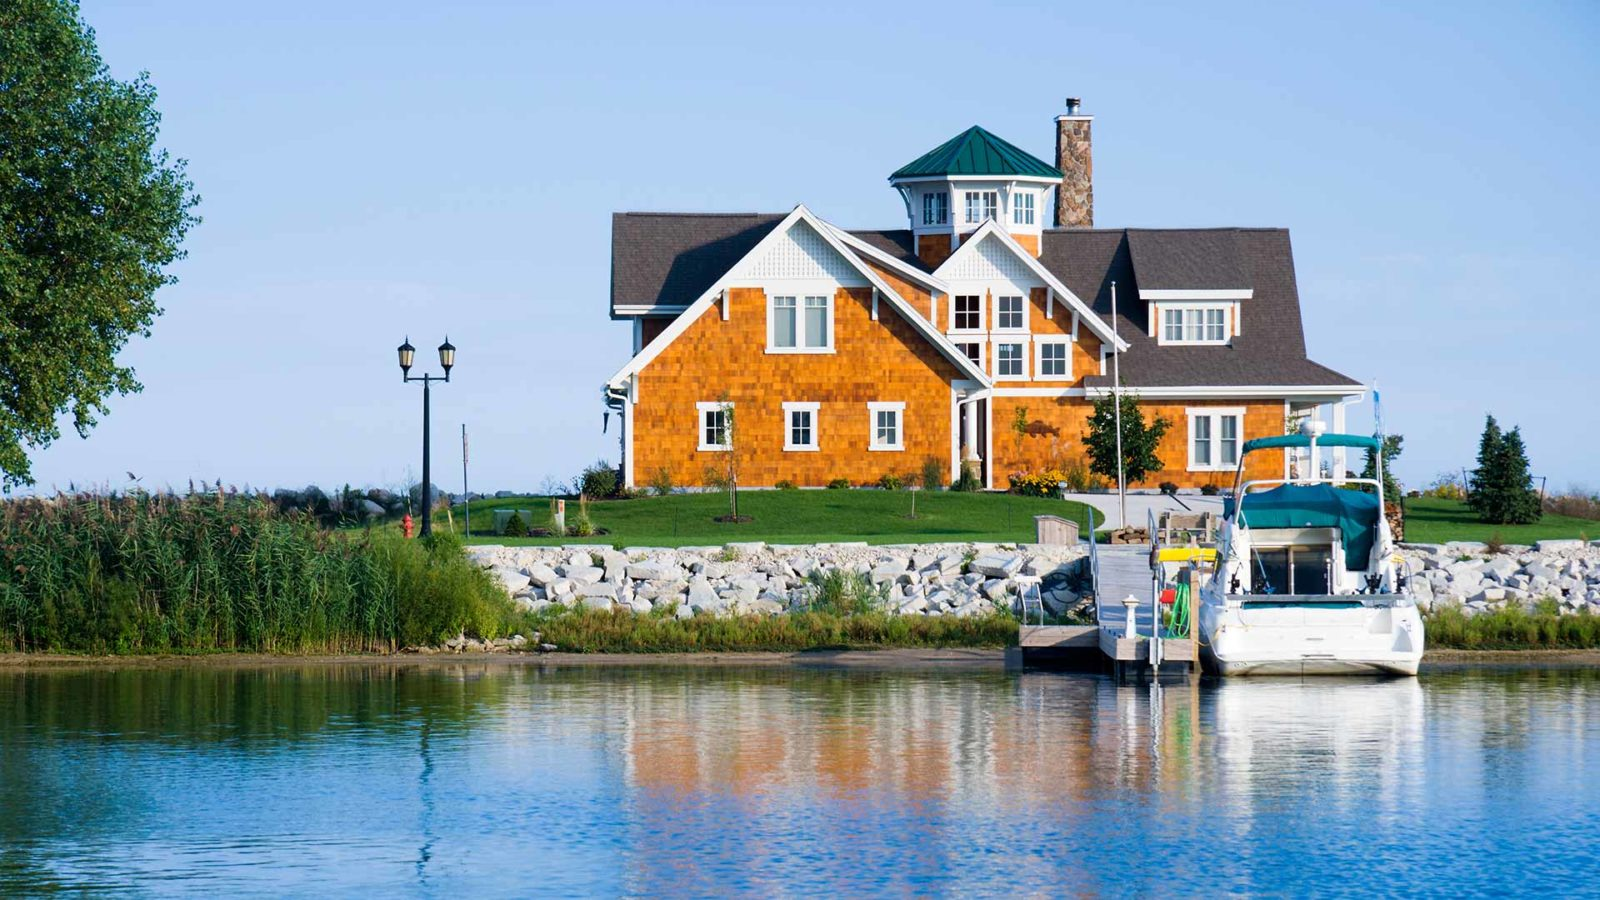 Home Insurance and Homeowners Insurance in Braintreet, Hingham, Laconia